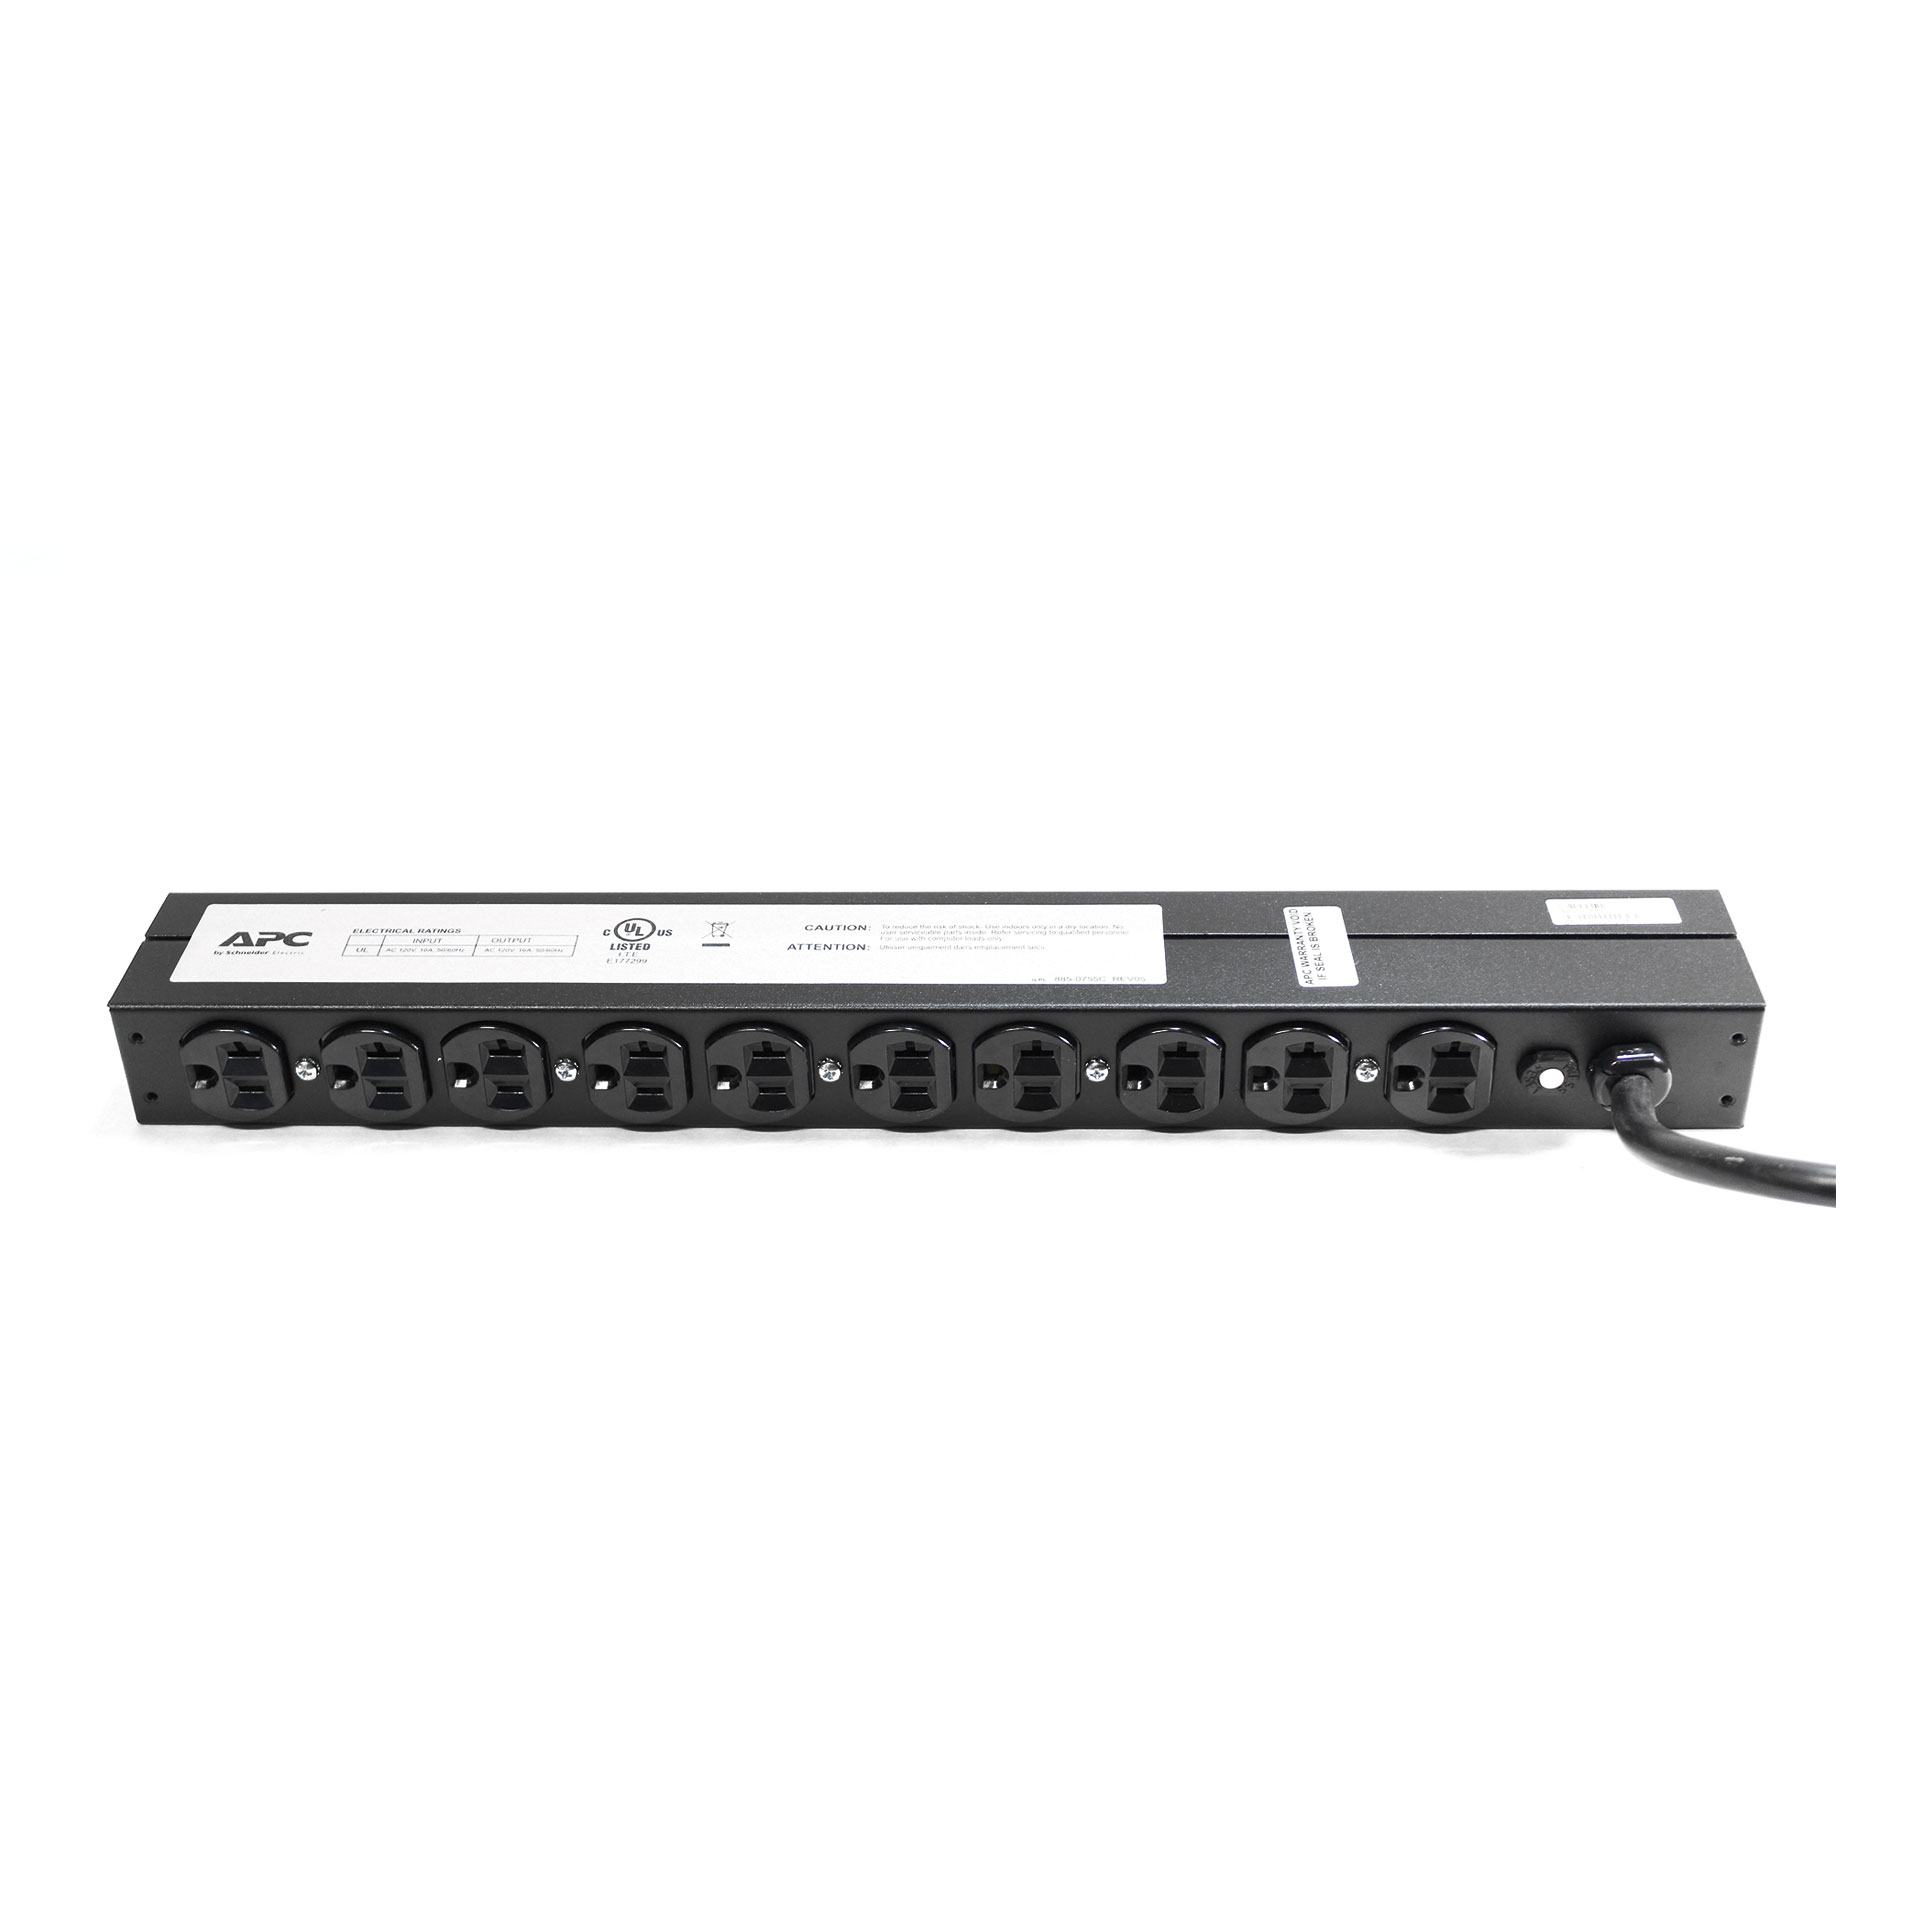 APC AP9563 Basic 1U 120V 20A 12 ft Power Distribution Units#